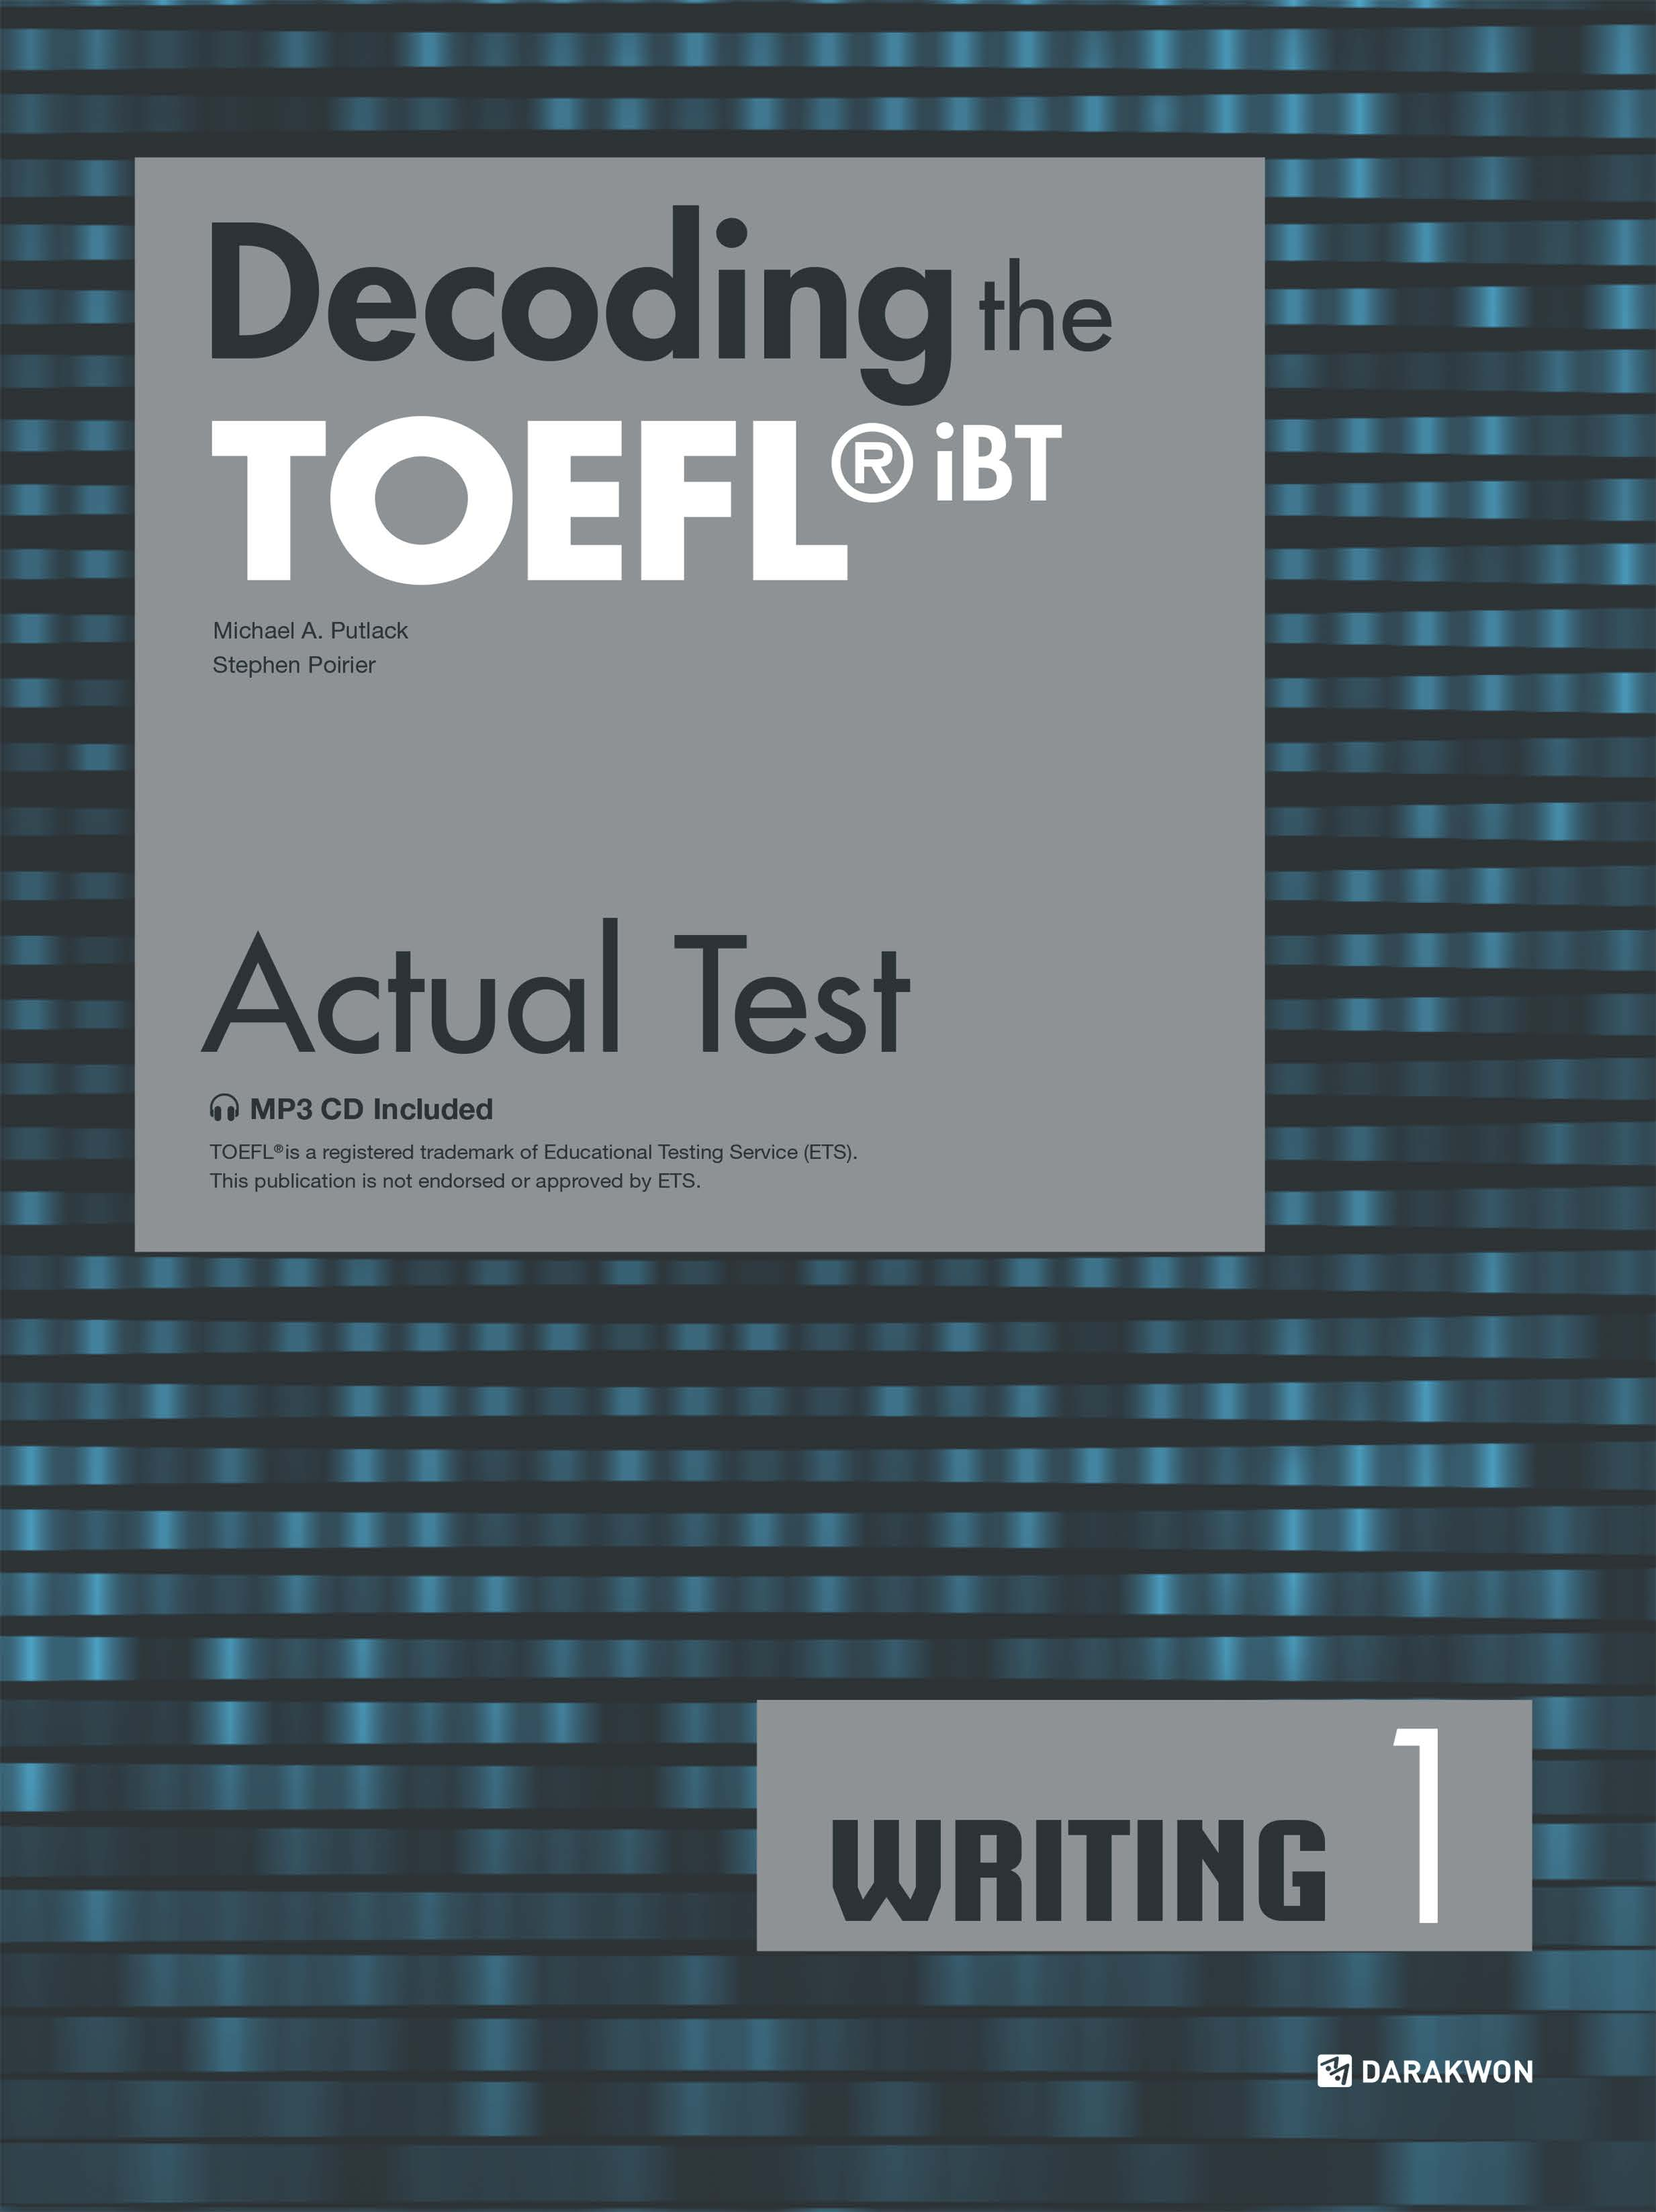 [Decoding the TOEFL iBT Actual Test] Decoding the TOEFL iBT Actual Test WRITING 1